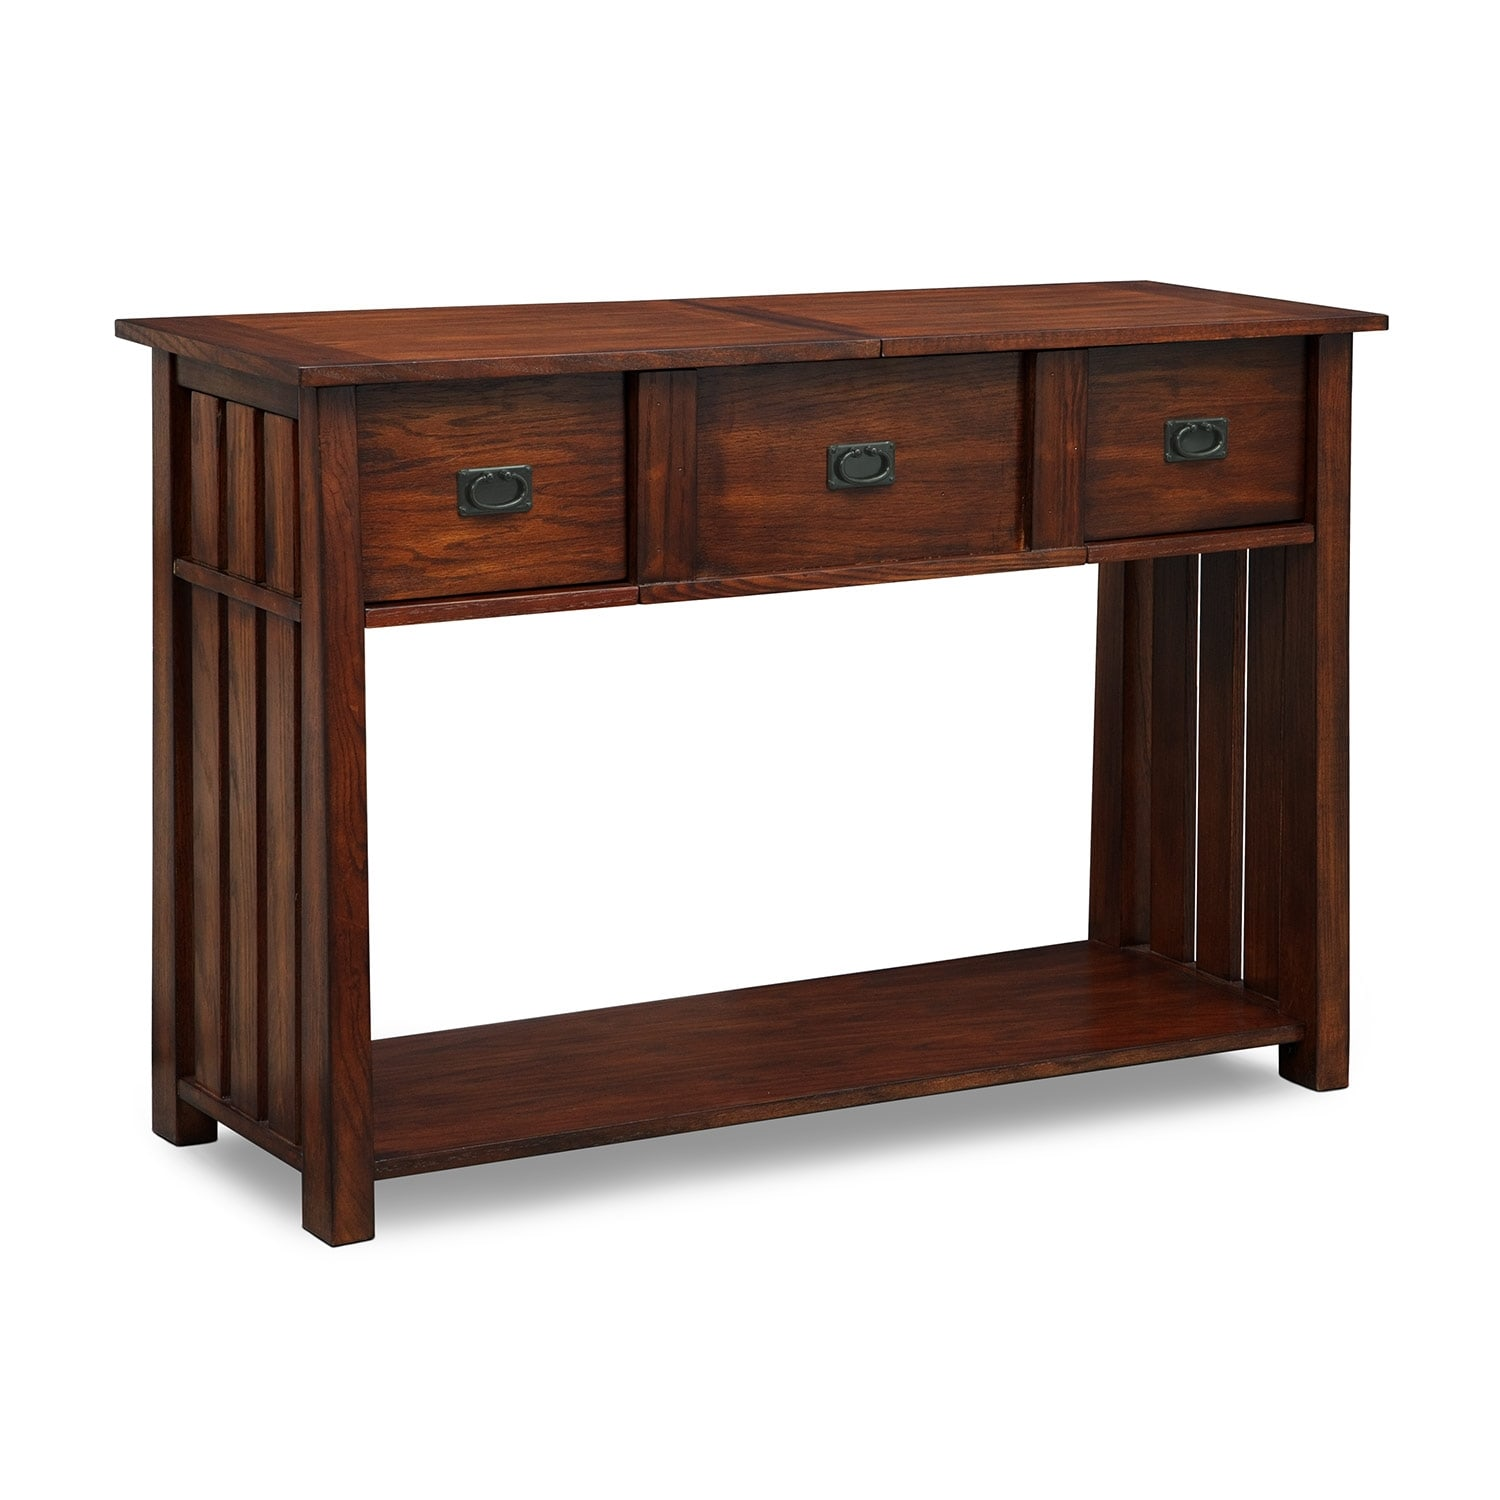 Accent and Occasional Furniture - Tribute Sofa Table - Cherry